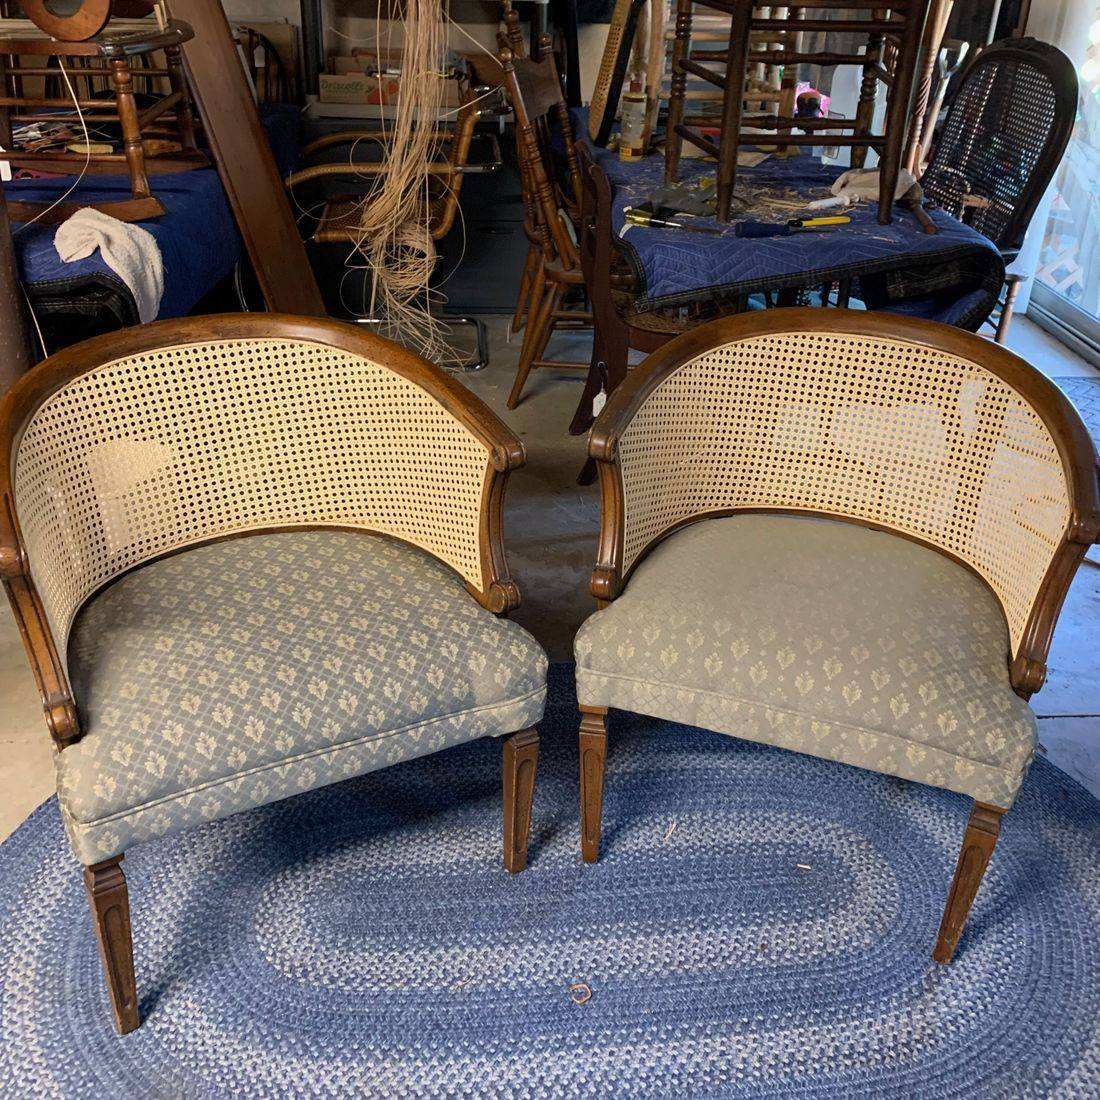 Pressed Cane Barrel Chairs by Hank's Cane & Rush Restoration